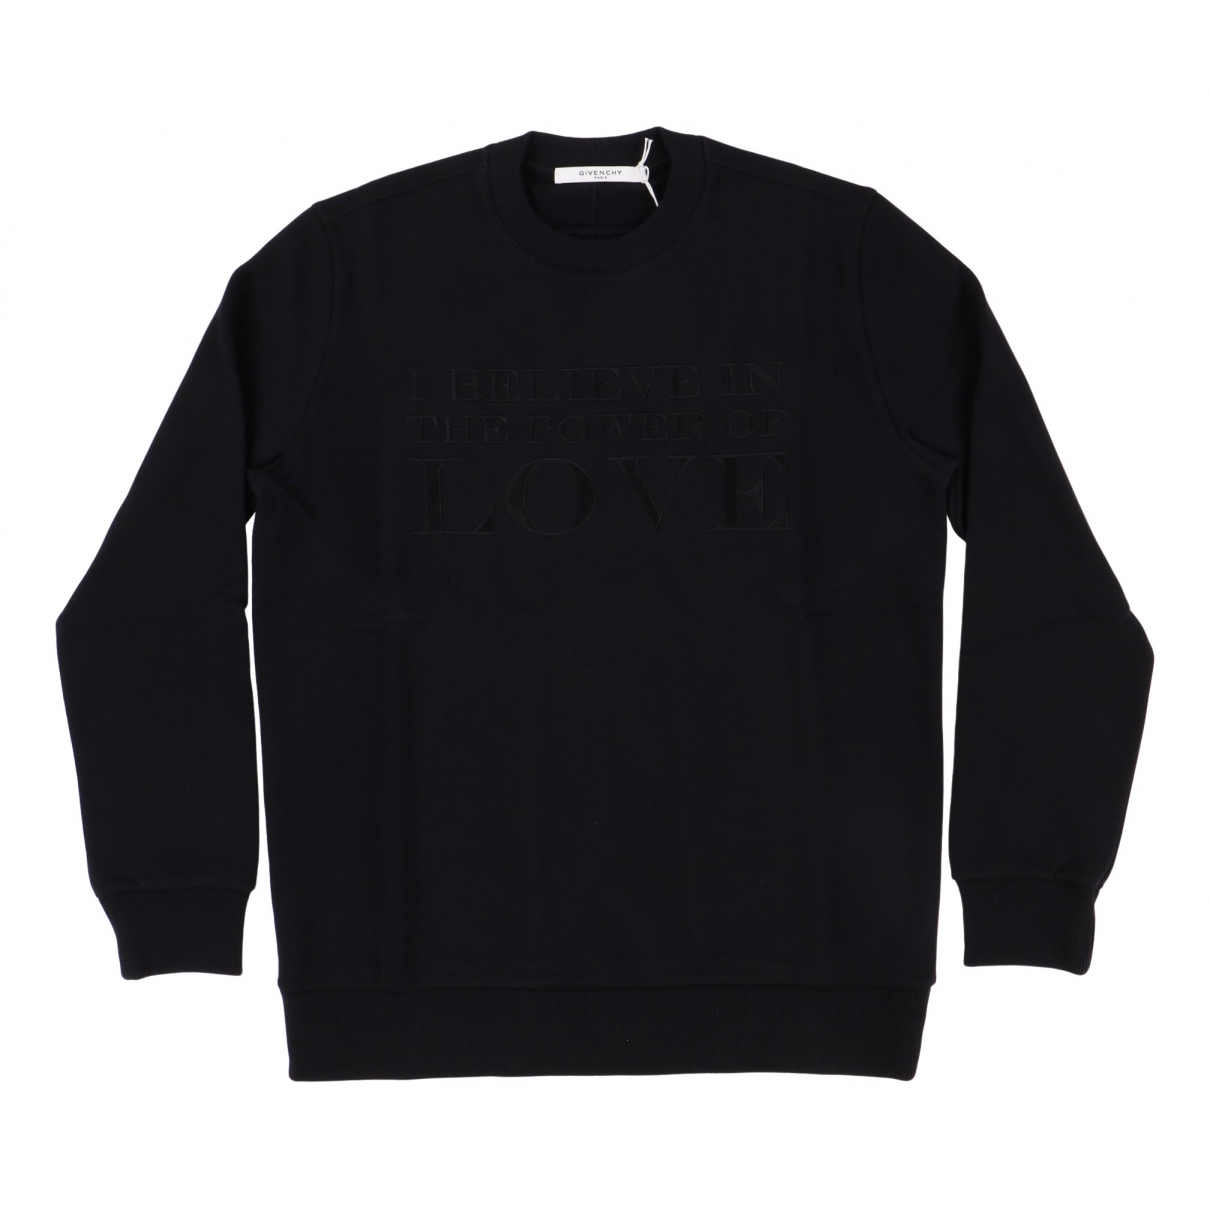 Givenchy \N Black Cotton Knitwear & Sweatshirts for Men M International